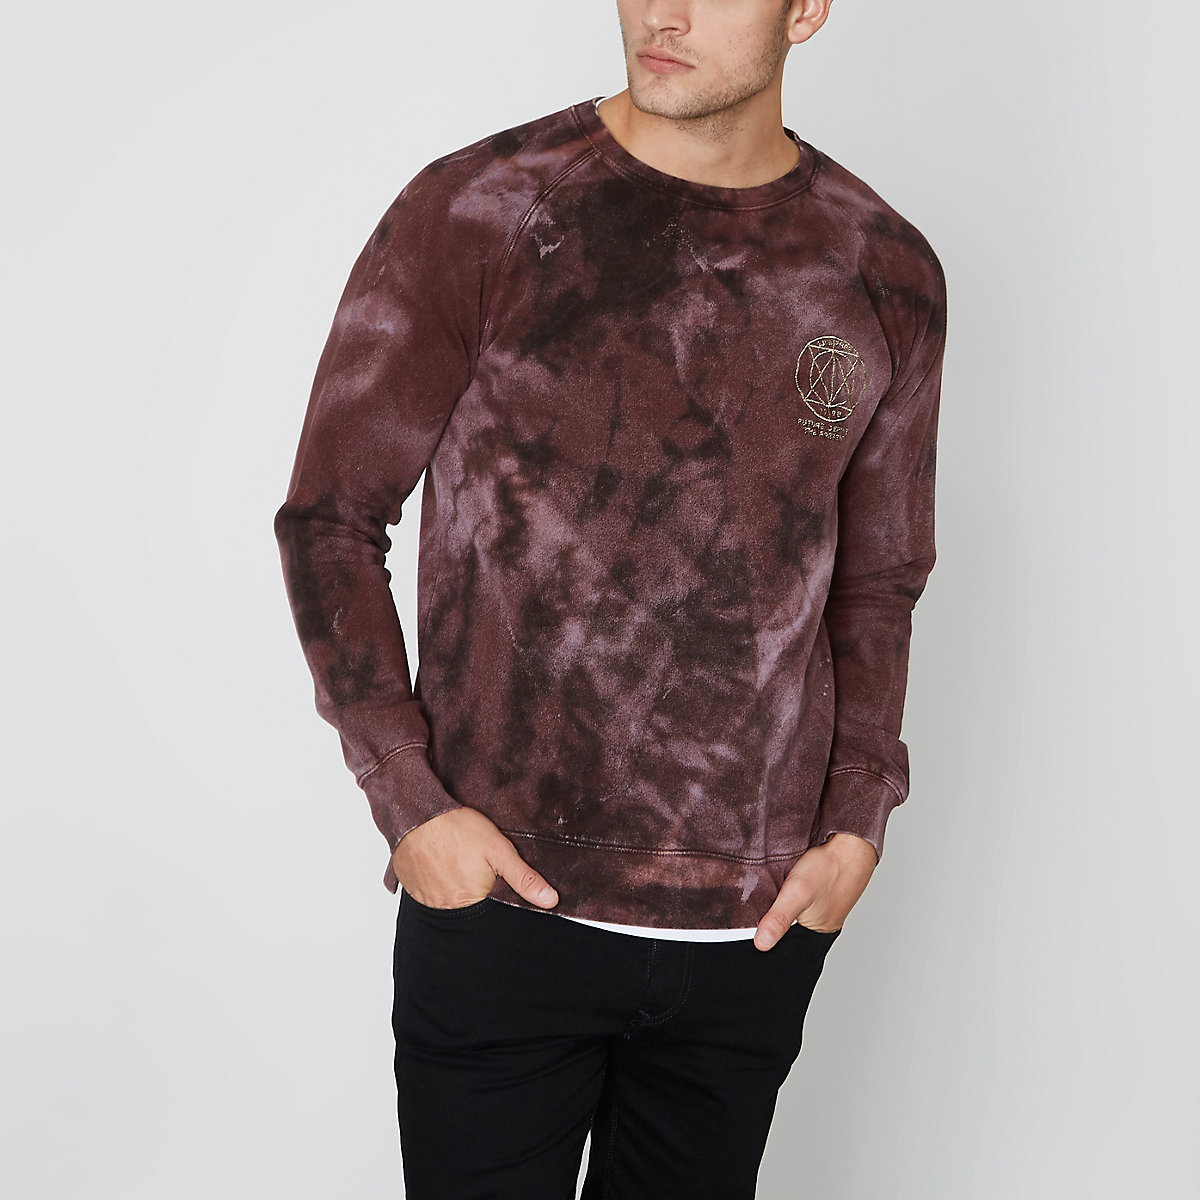 Jack & Jones red tie dye crew sweatshirt